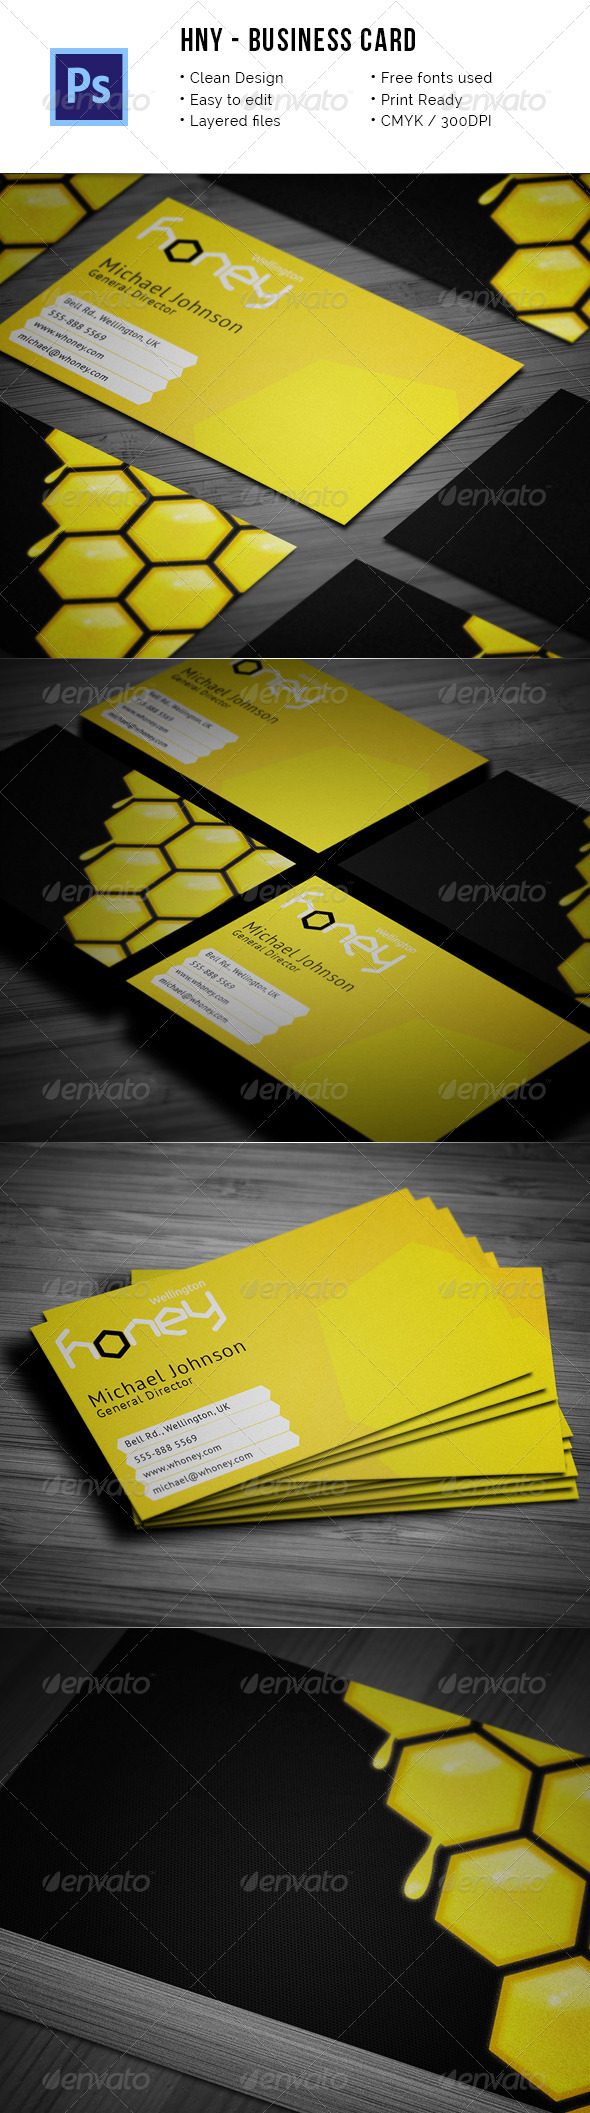 Hny - Honey Company Business Card - Industry Specific Business Cards